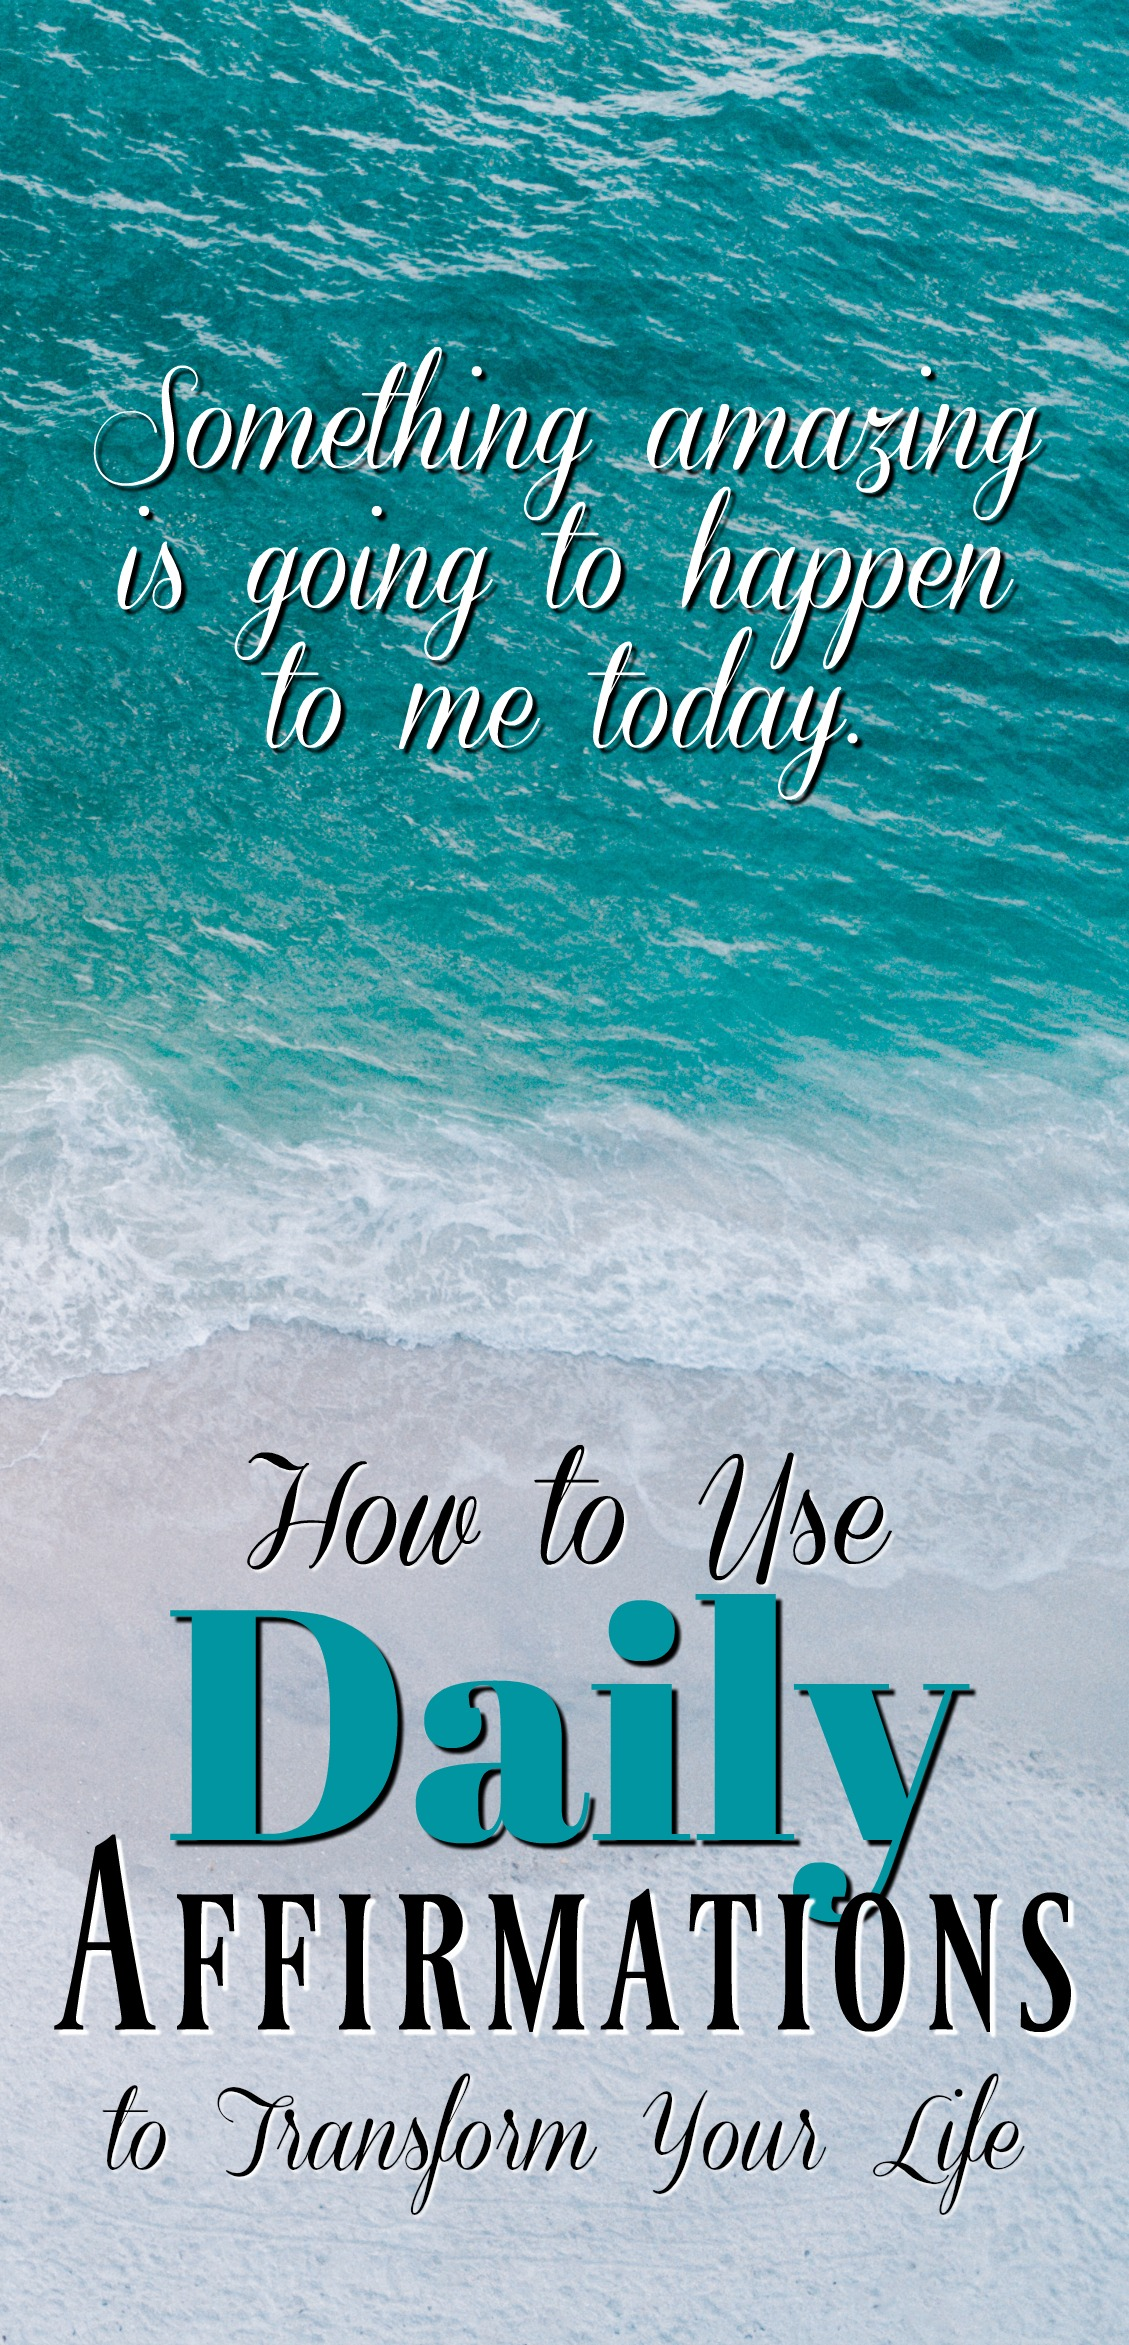 Daily affirmations are one of the quickest and easiest ways to completely transform your life and all it takes is positive-thinking, self-empowerment, and the law of attraction!